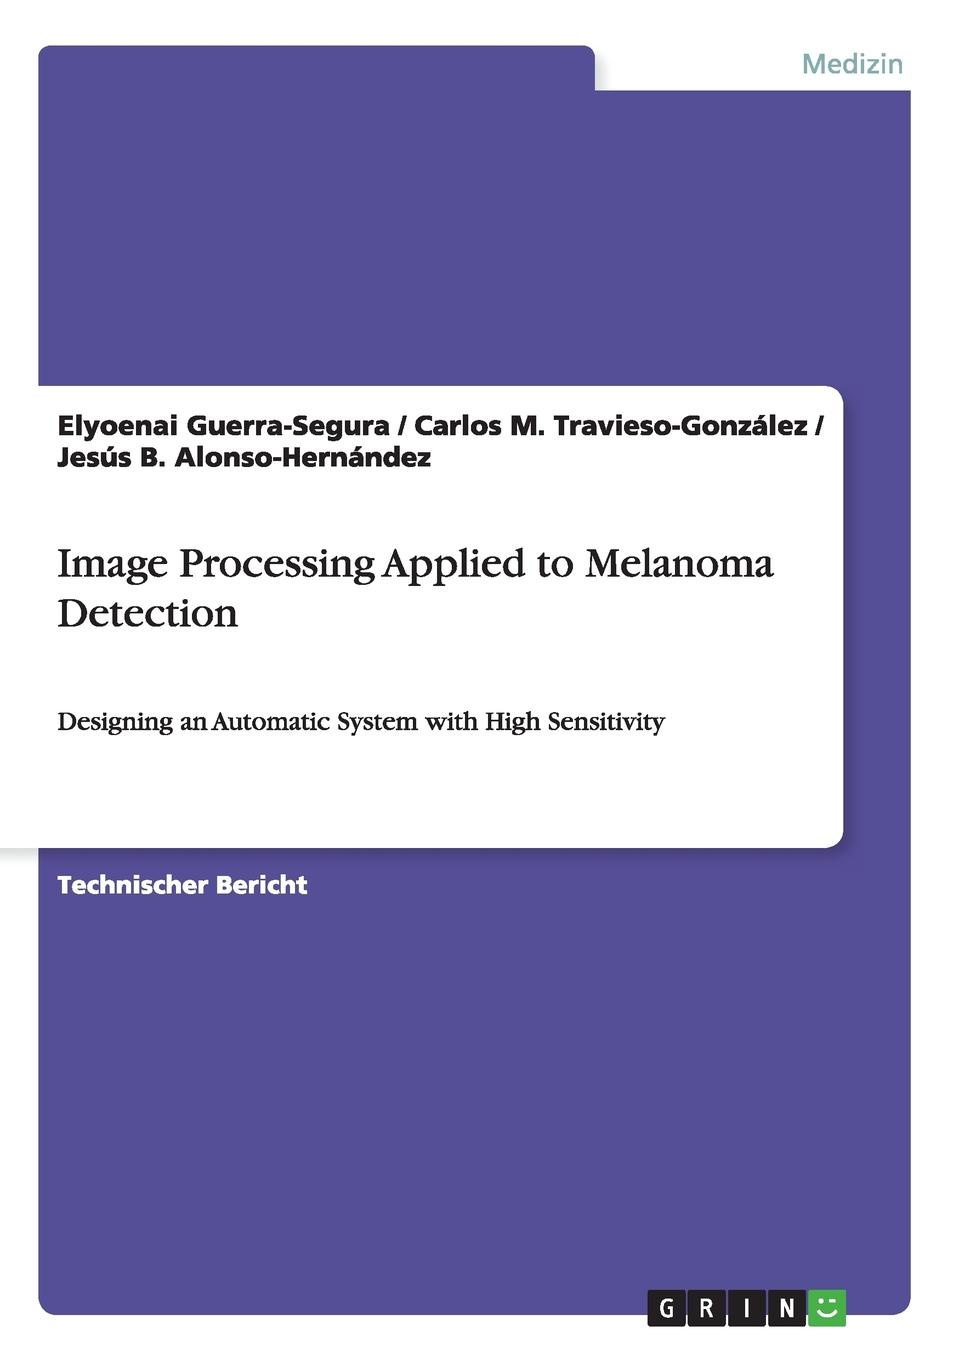 Elyoenai Guerra-Segura, Carlos M. Travieso-González, Jesús B. Alonso-Hernández Image Processing Applied to Melanoma Detection все цены